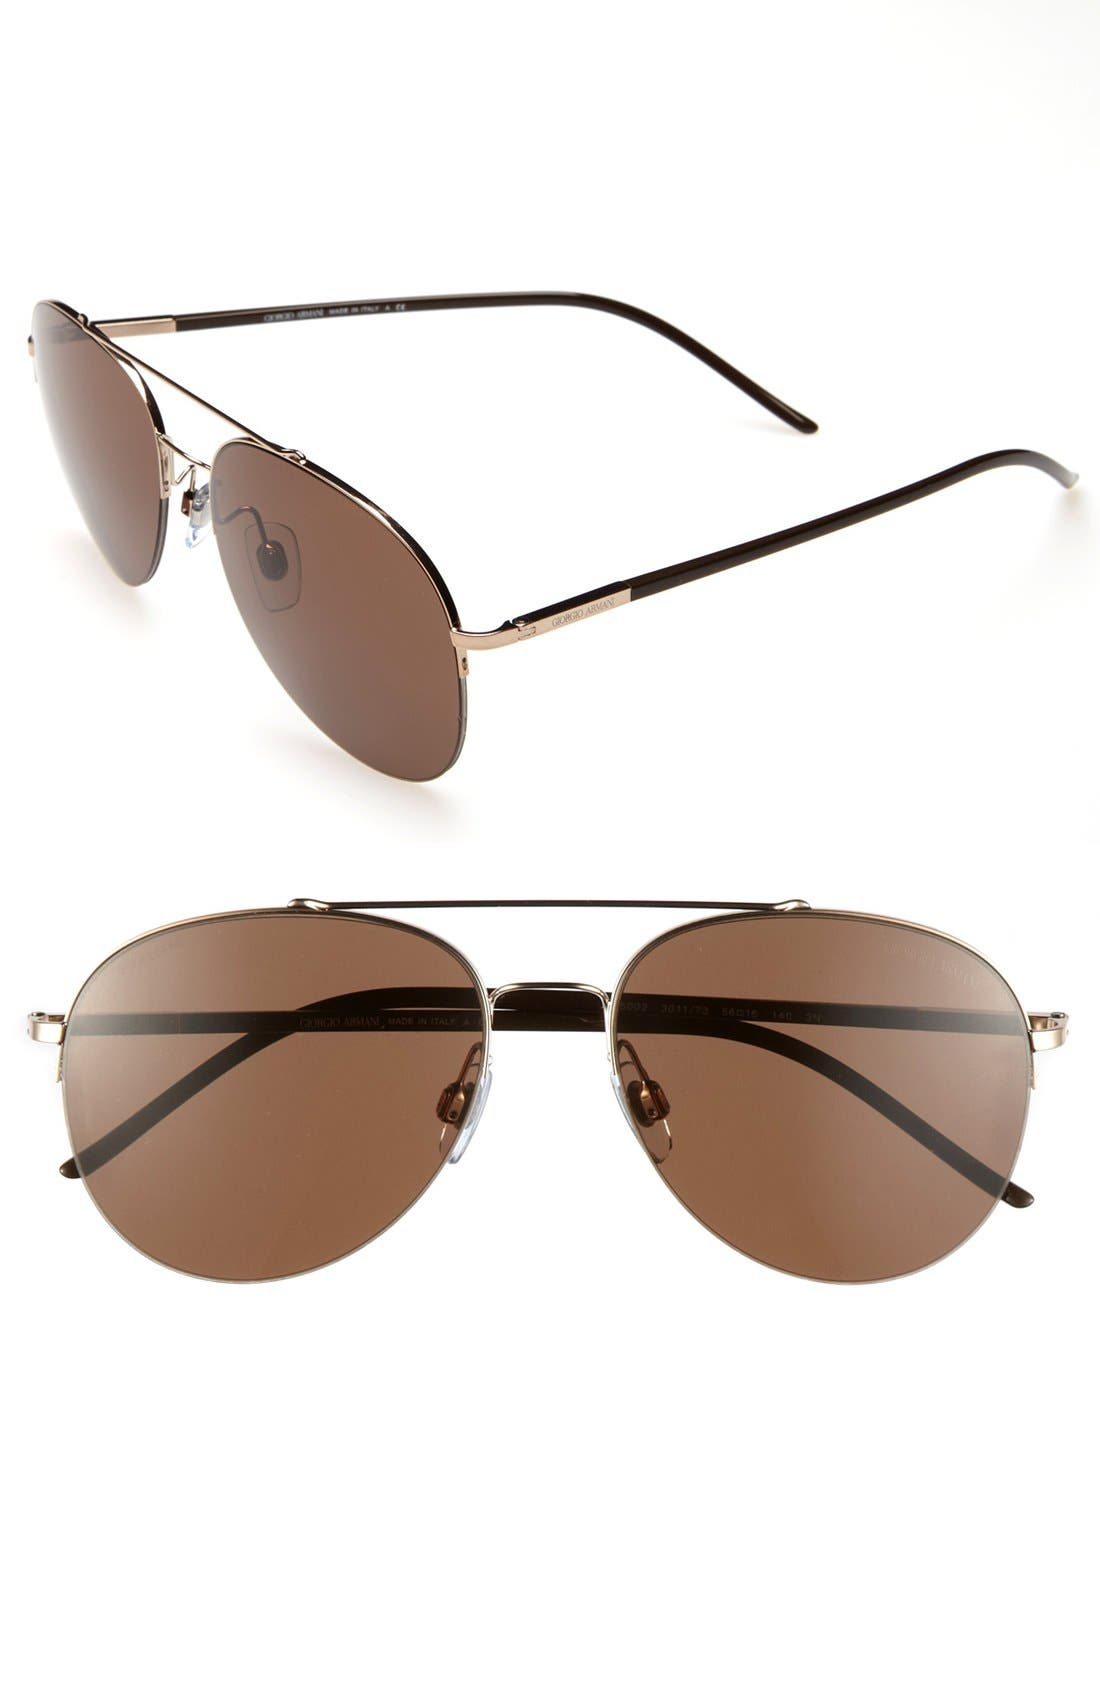 Alternate Image 1 Selected - Giorgio Armani 56mm Aviator Sunglasses